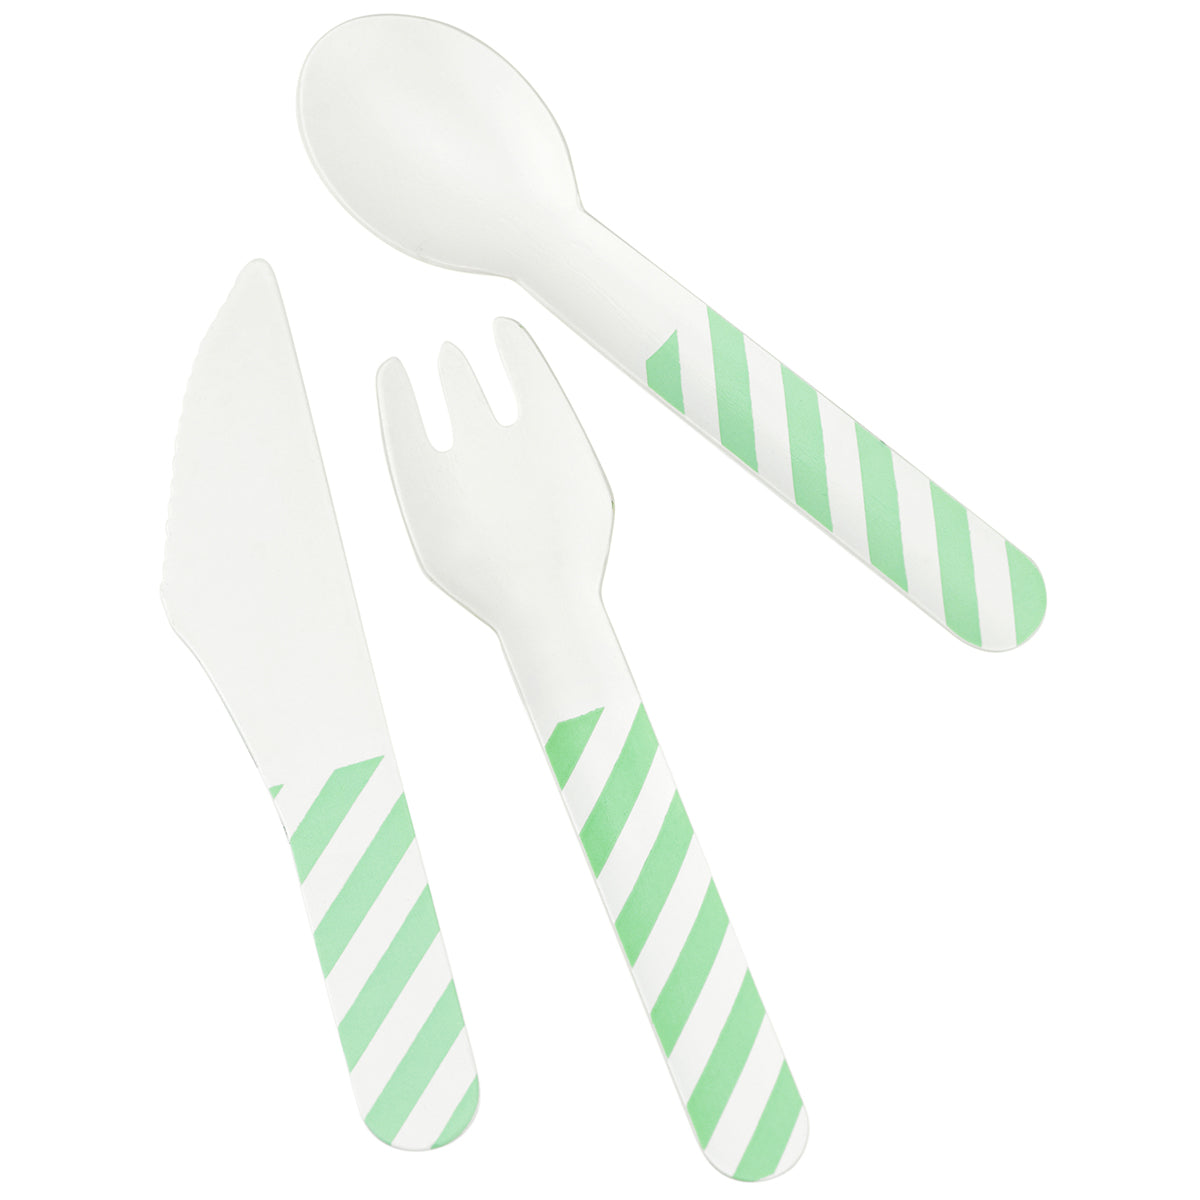 Displaying a set of light green striped paper cutlery, which includes knife, fork and spoon